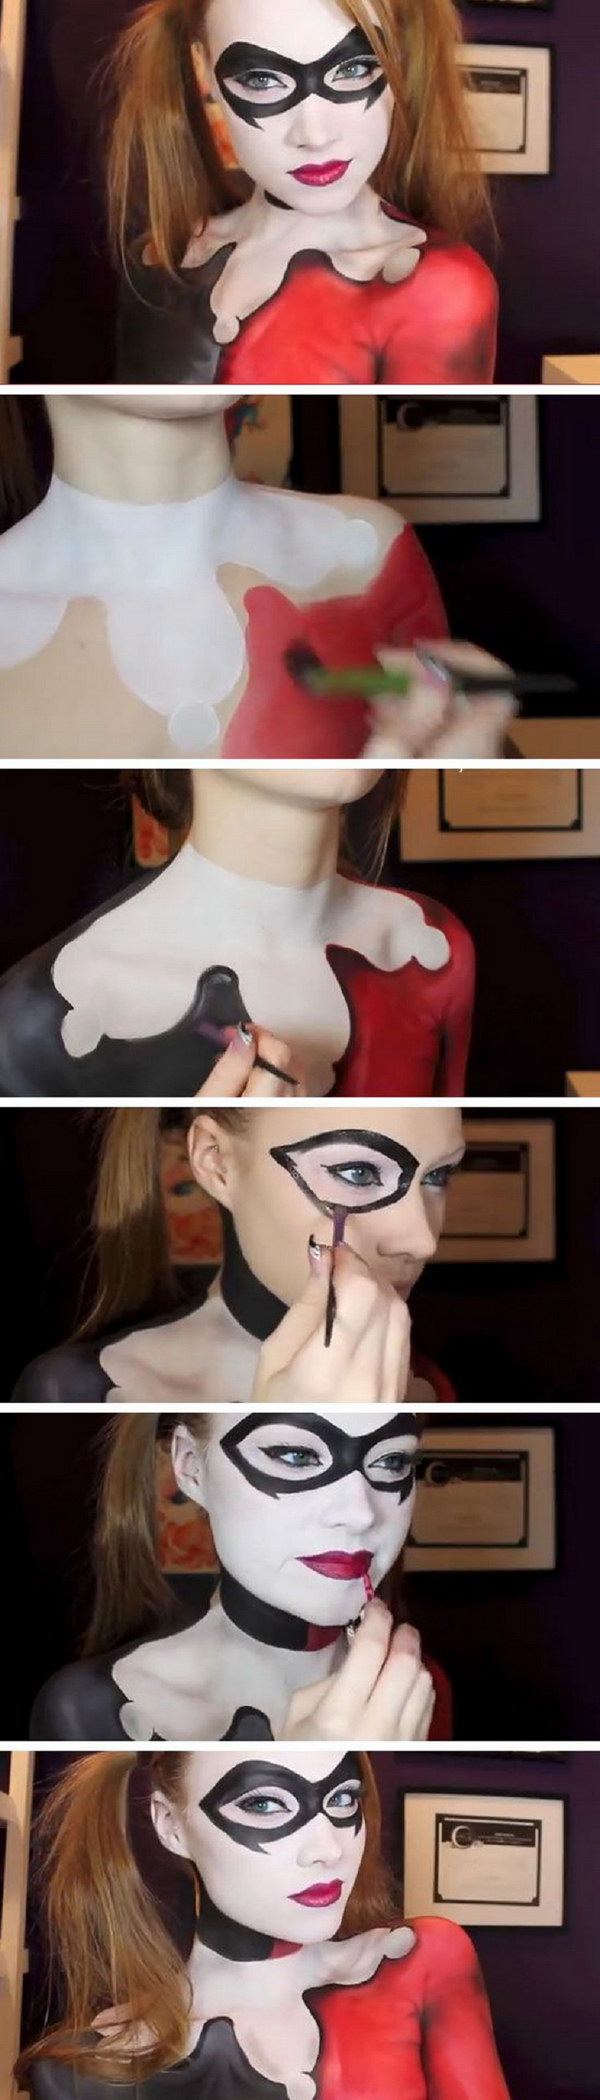 Harley Quinn - Batman Makeup & Body Paint Tutorial.